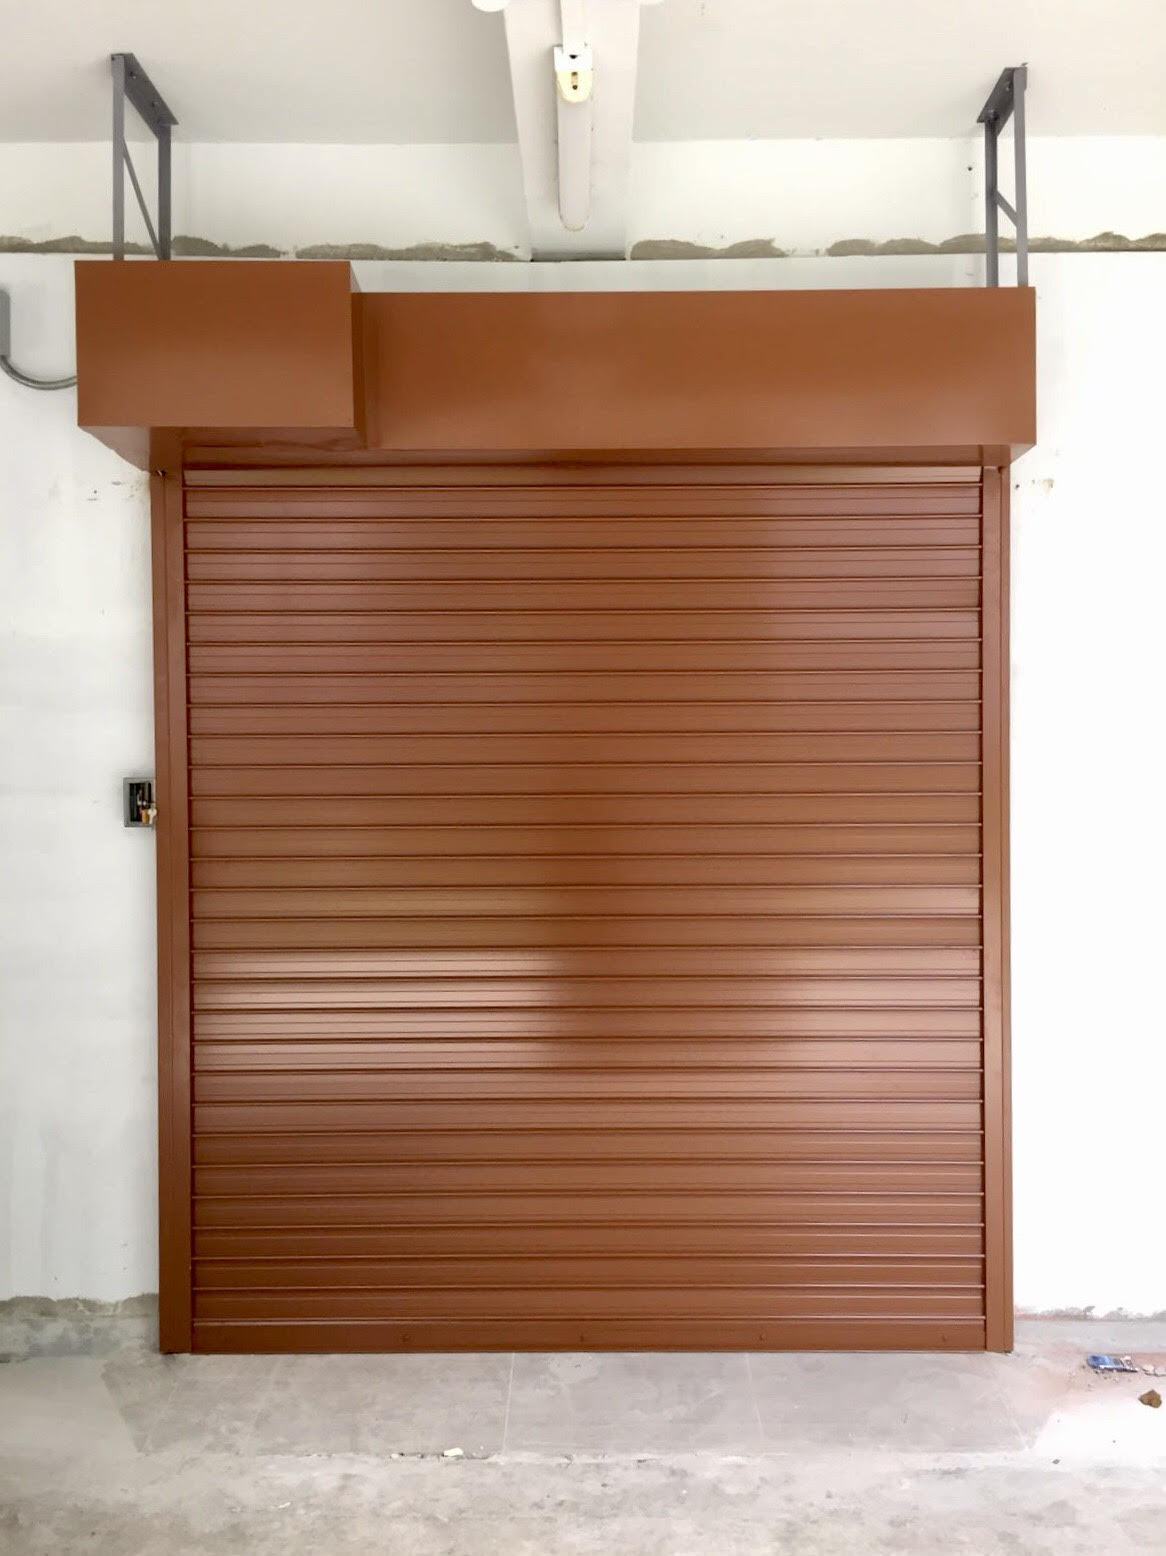 Motorised Operated Aluminium Roller Shutter in Powder Coated Finishing (Clay brown) for Preschool at Marsiling Road (Phase 2)